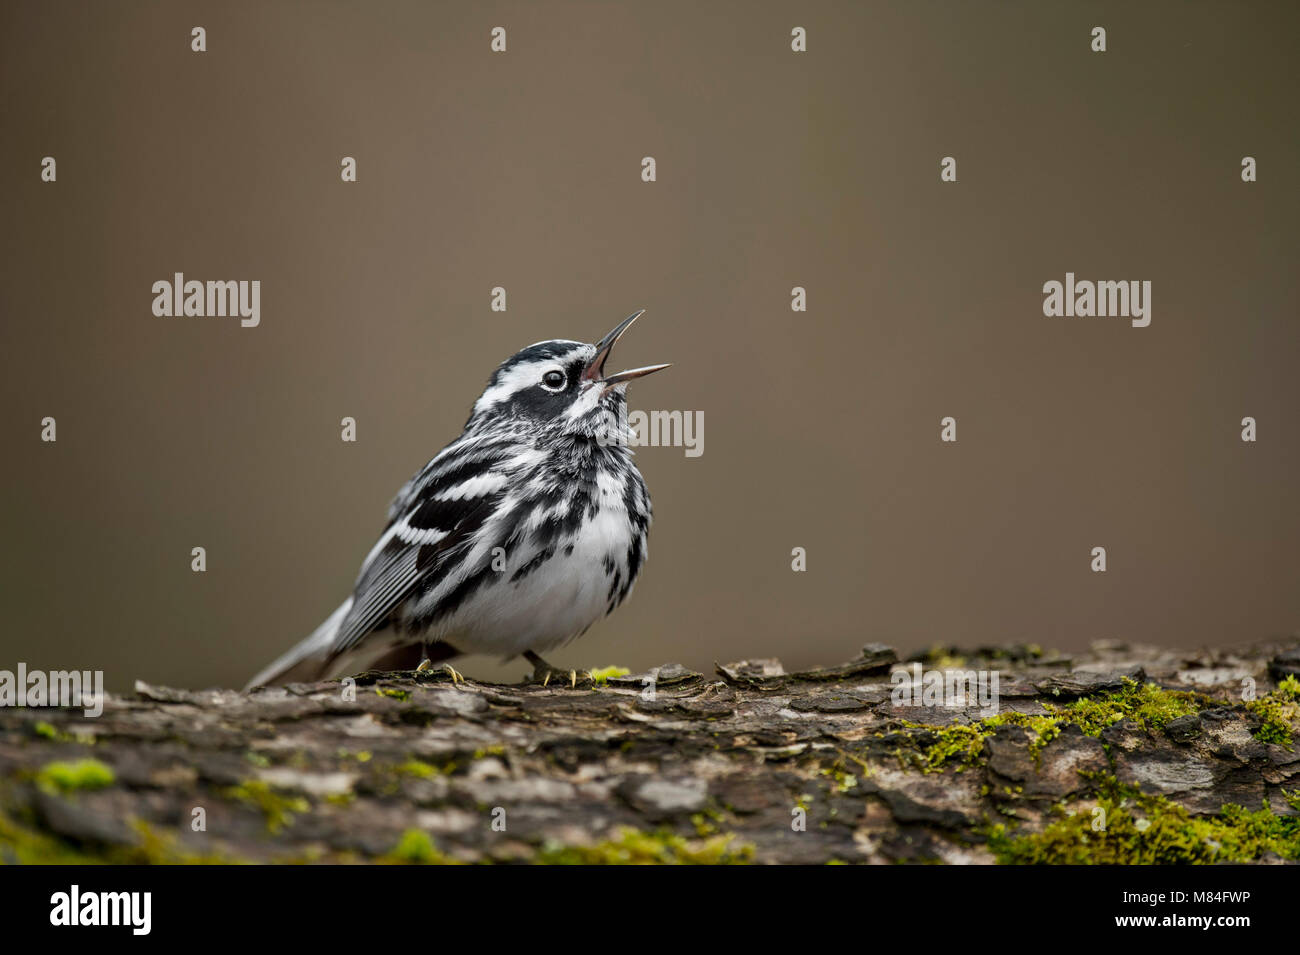 A striking Black and White Warbler perches on a tree trunk singing loudly in the soft overcast light. - Stock Image